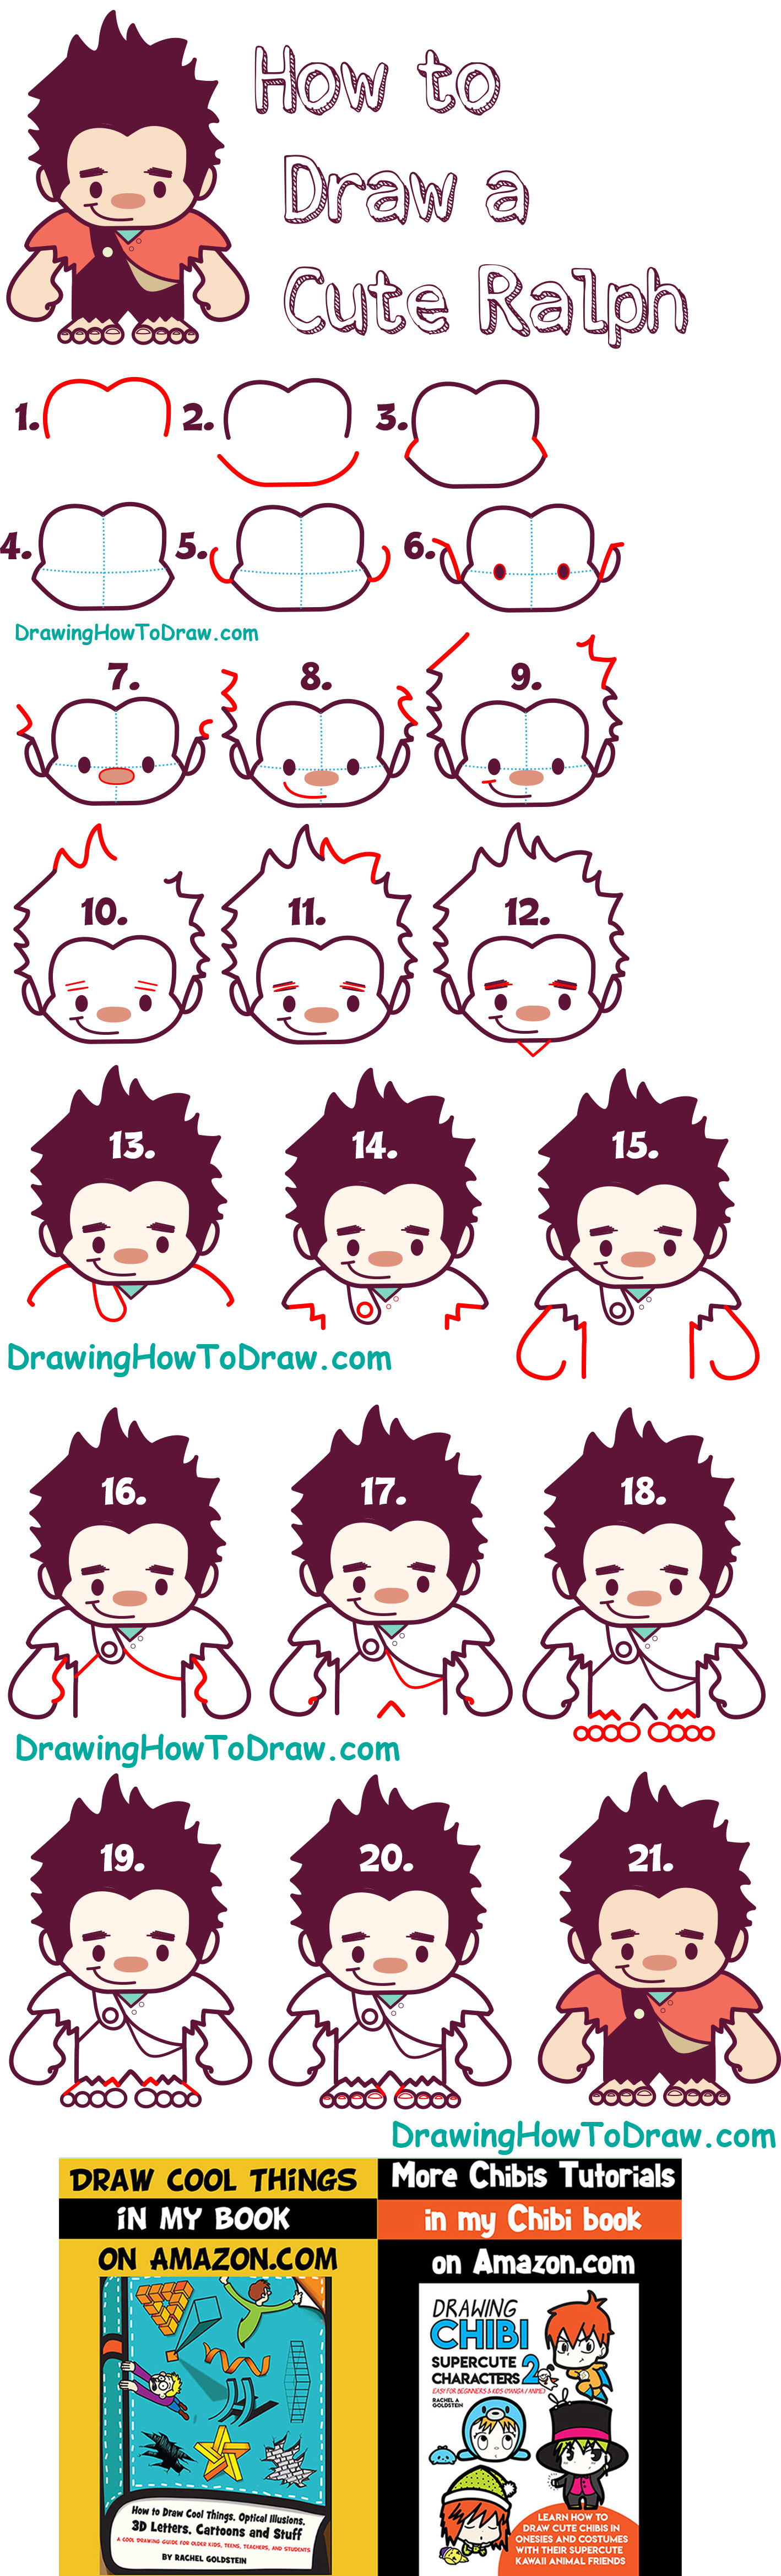 How to Draw Cute Kawaii Chibi Ralph from Wreck it Ralph - Easy Steps for Kids